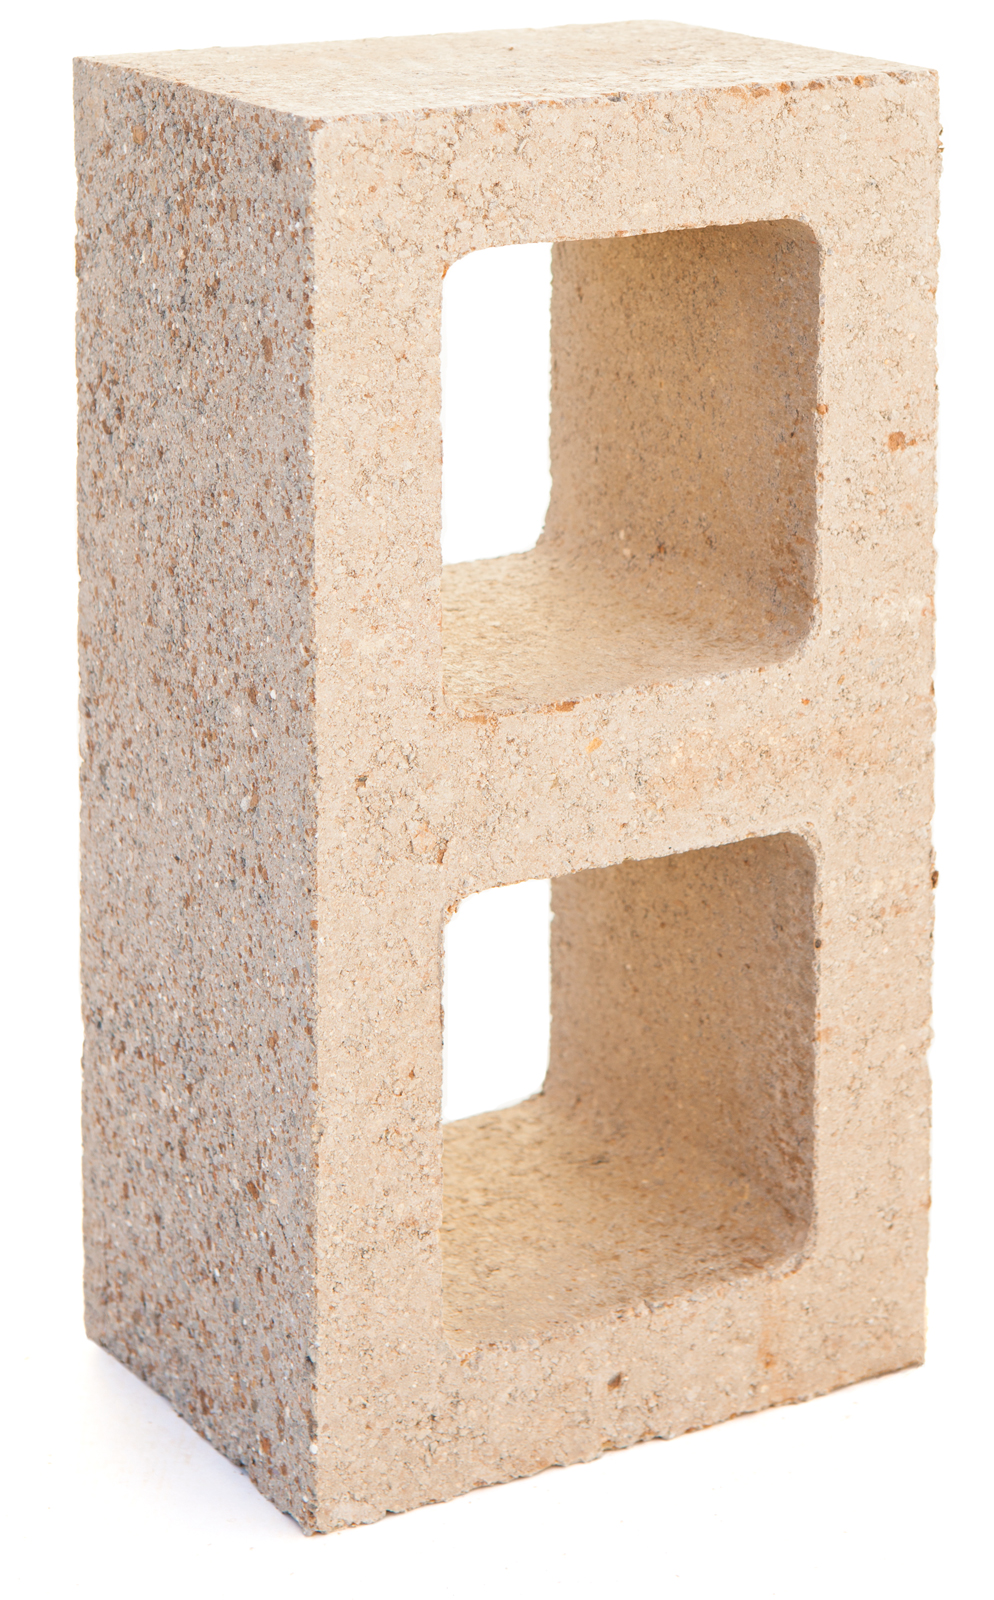 Watershed Block made with half the cement of an ordinary concrete block. The block derives its natural appearance from the mineralogy of locally sourced recycled material.